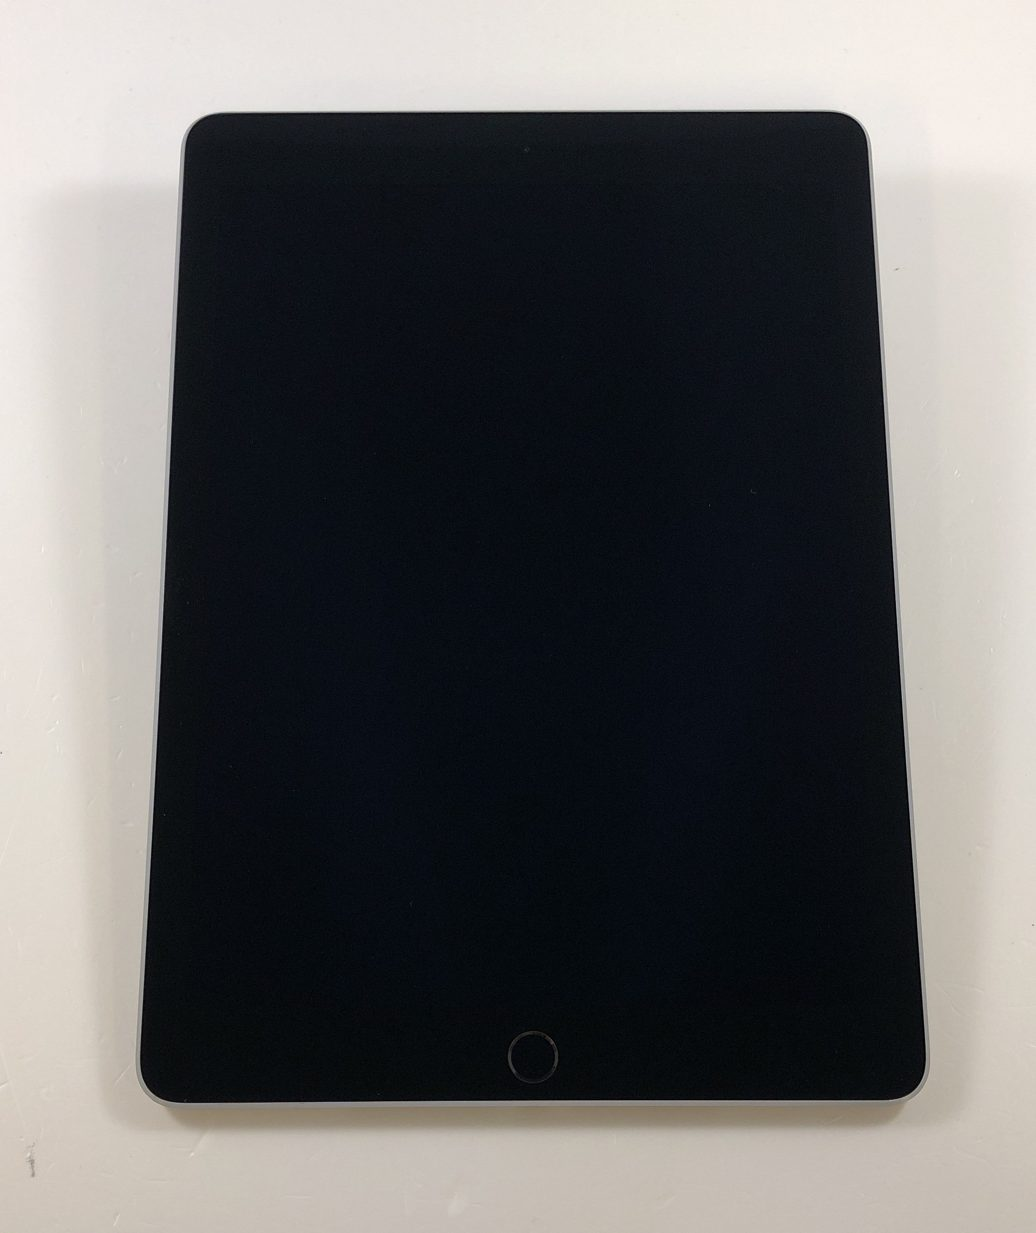 iPad Air 2 Wi-Fi 128GB, 128GB, Space Gray, immagine 1